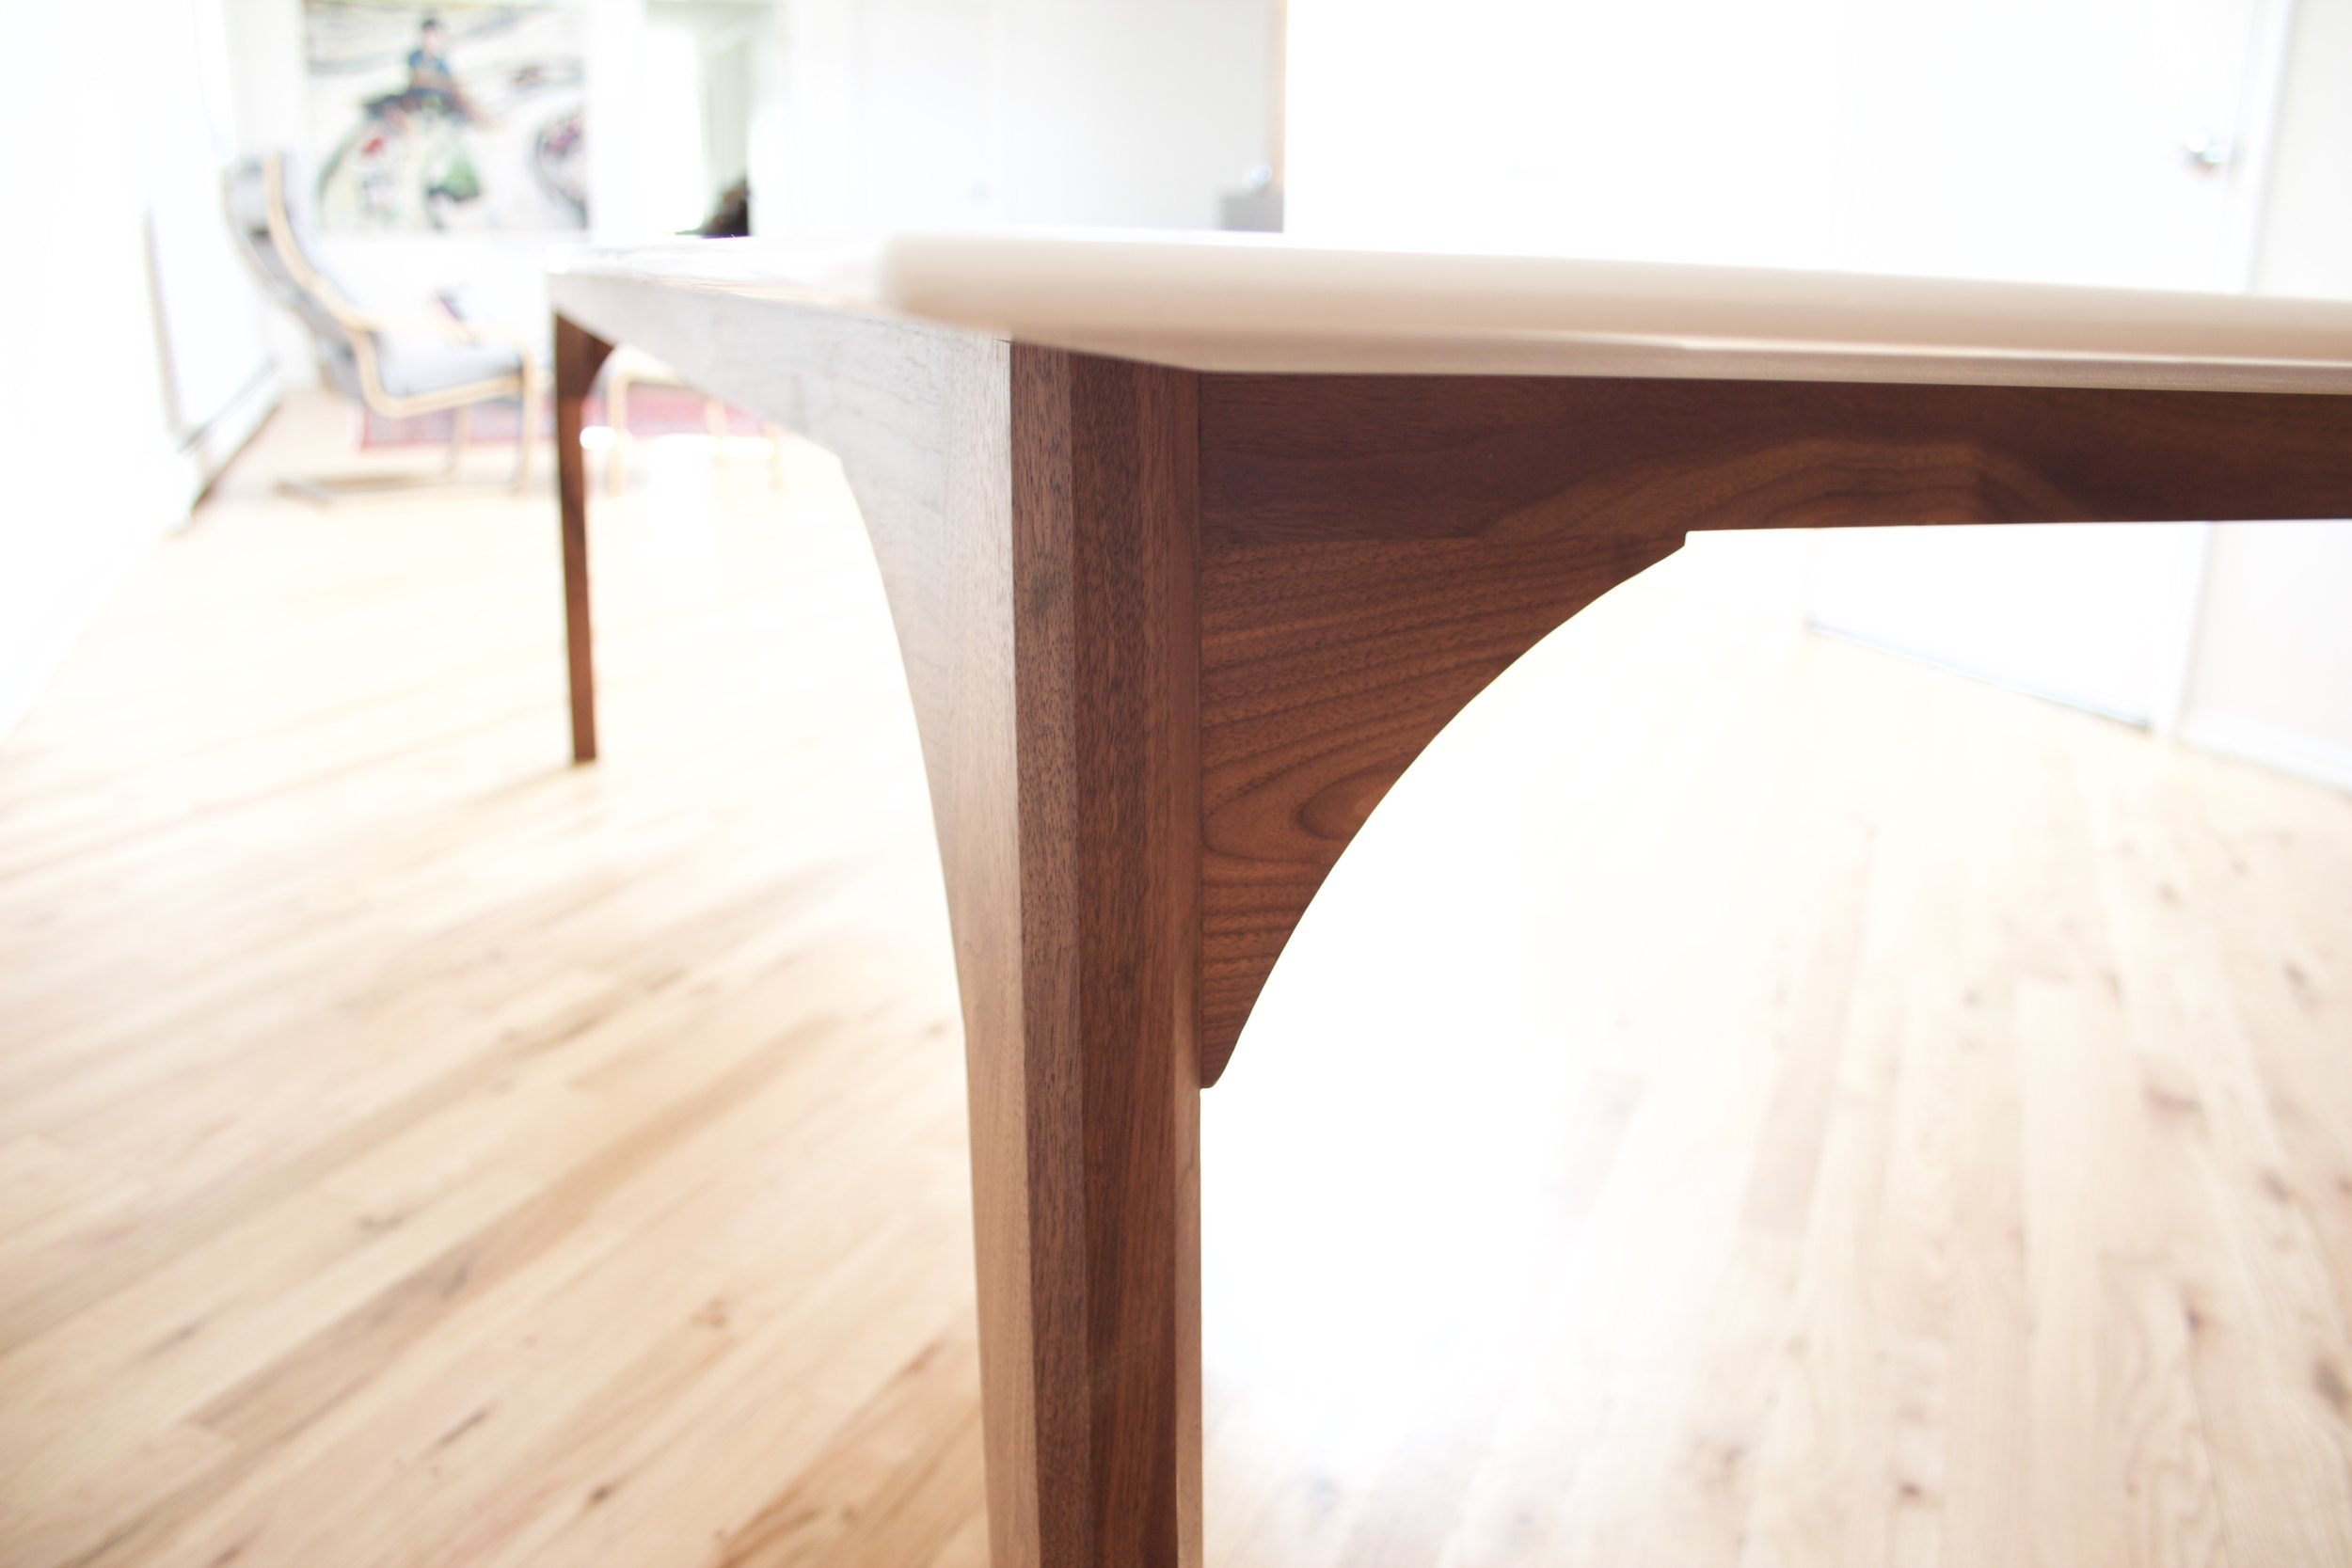 Marble_Walnut_Dining_Table_3.jpg